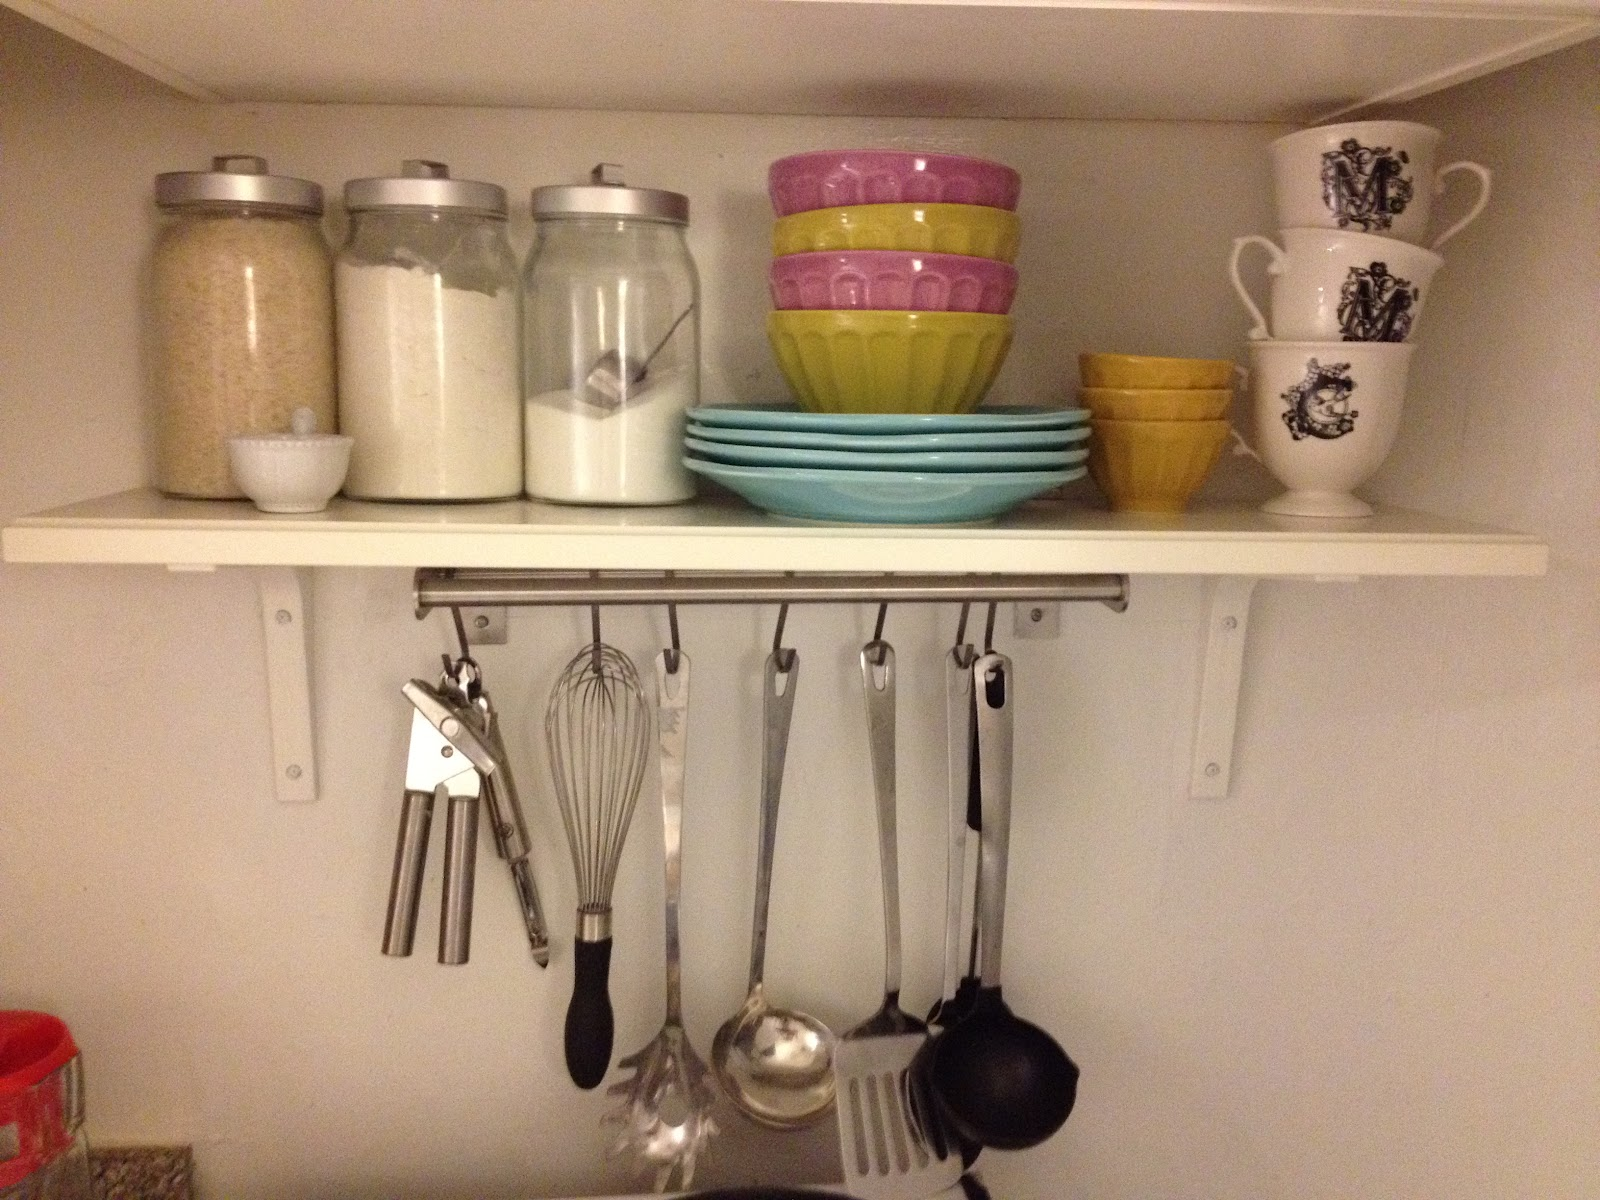 Claire crisp diy small kitchen organizing ideas for Small kitchen organizing ideas